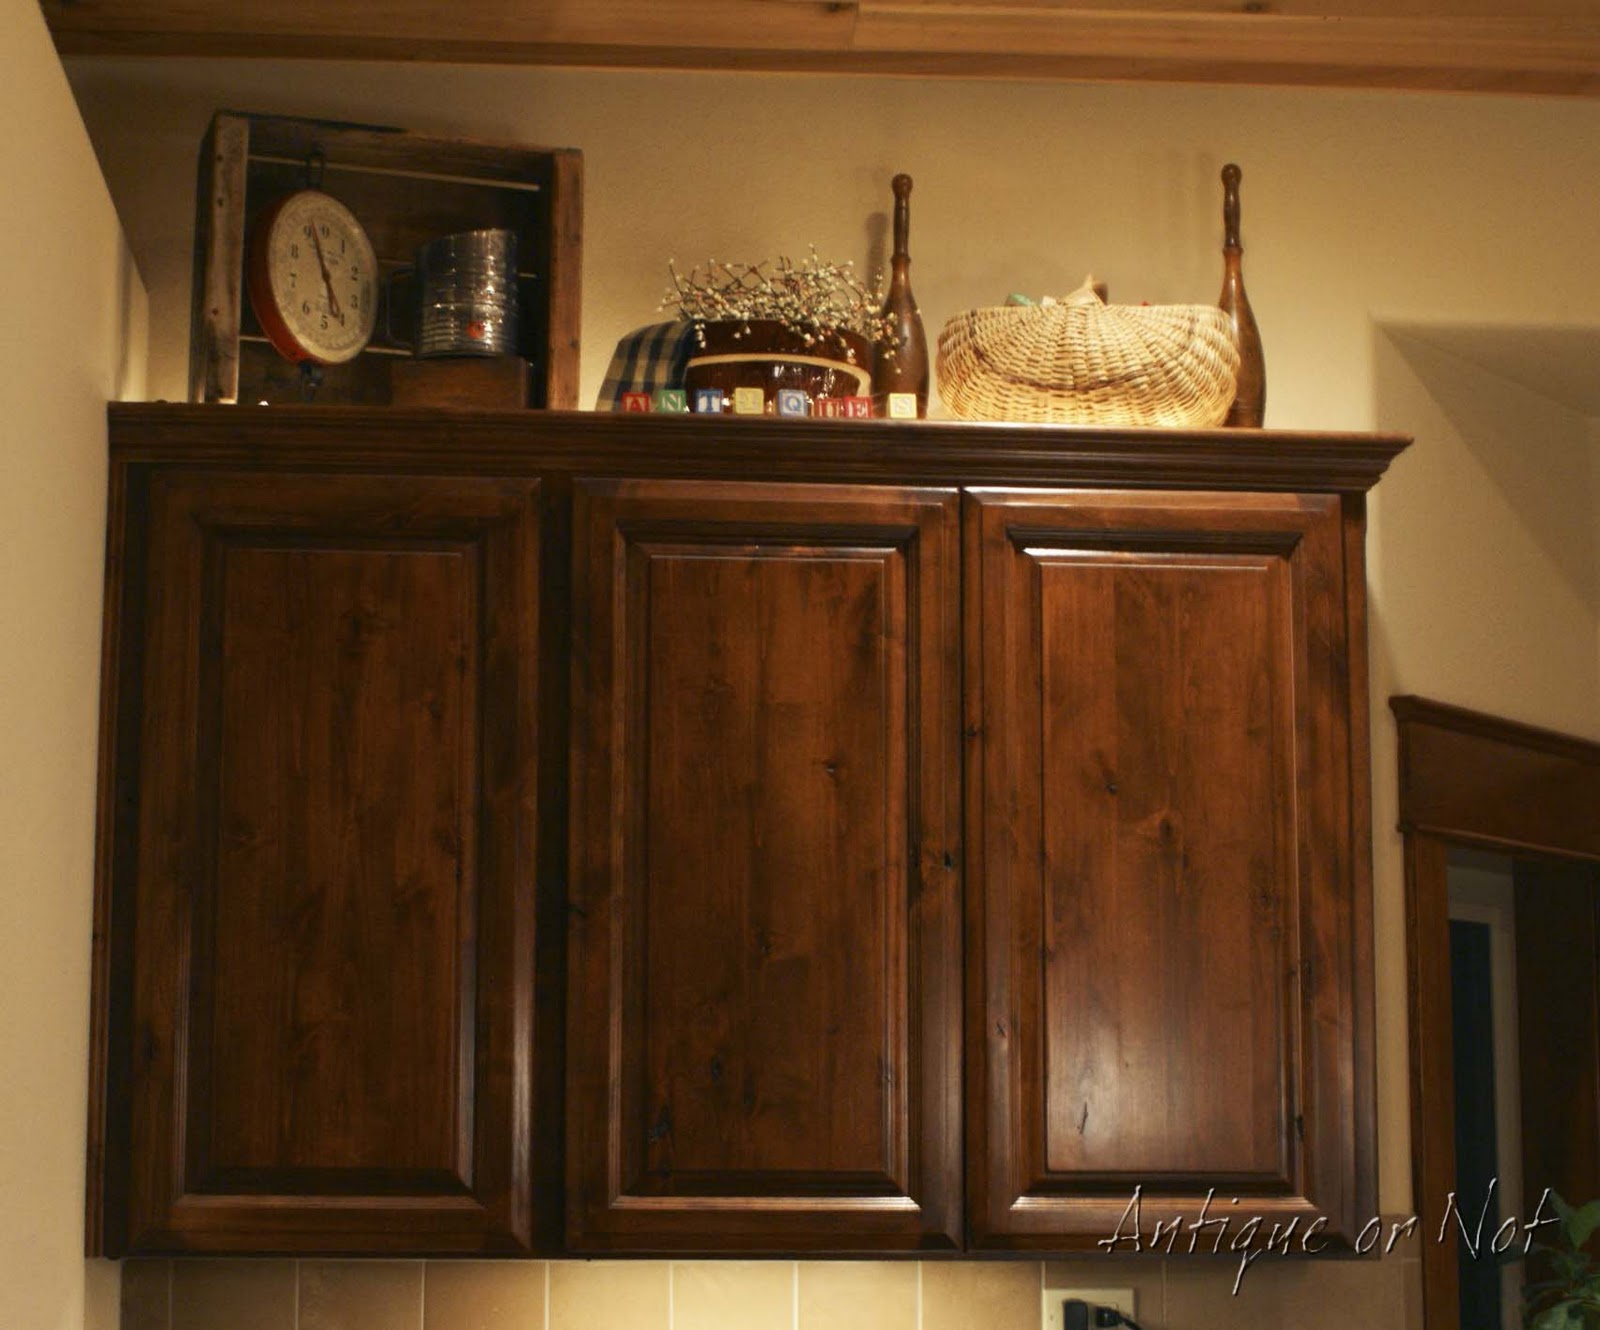 Ideas Decorate Over Cabinets Kitchen on paint over kitchen cabinets, words over kitchen cabinets, tile over kitchen cabinets, build over kitchen cabinets,